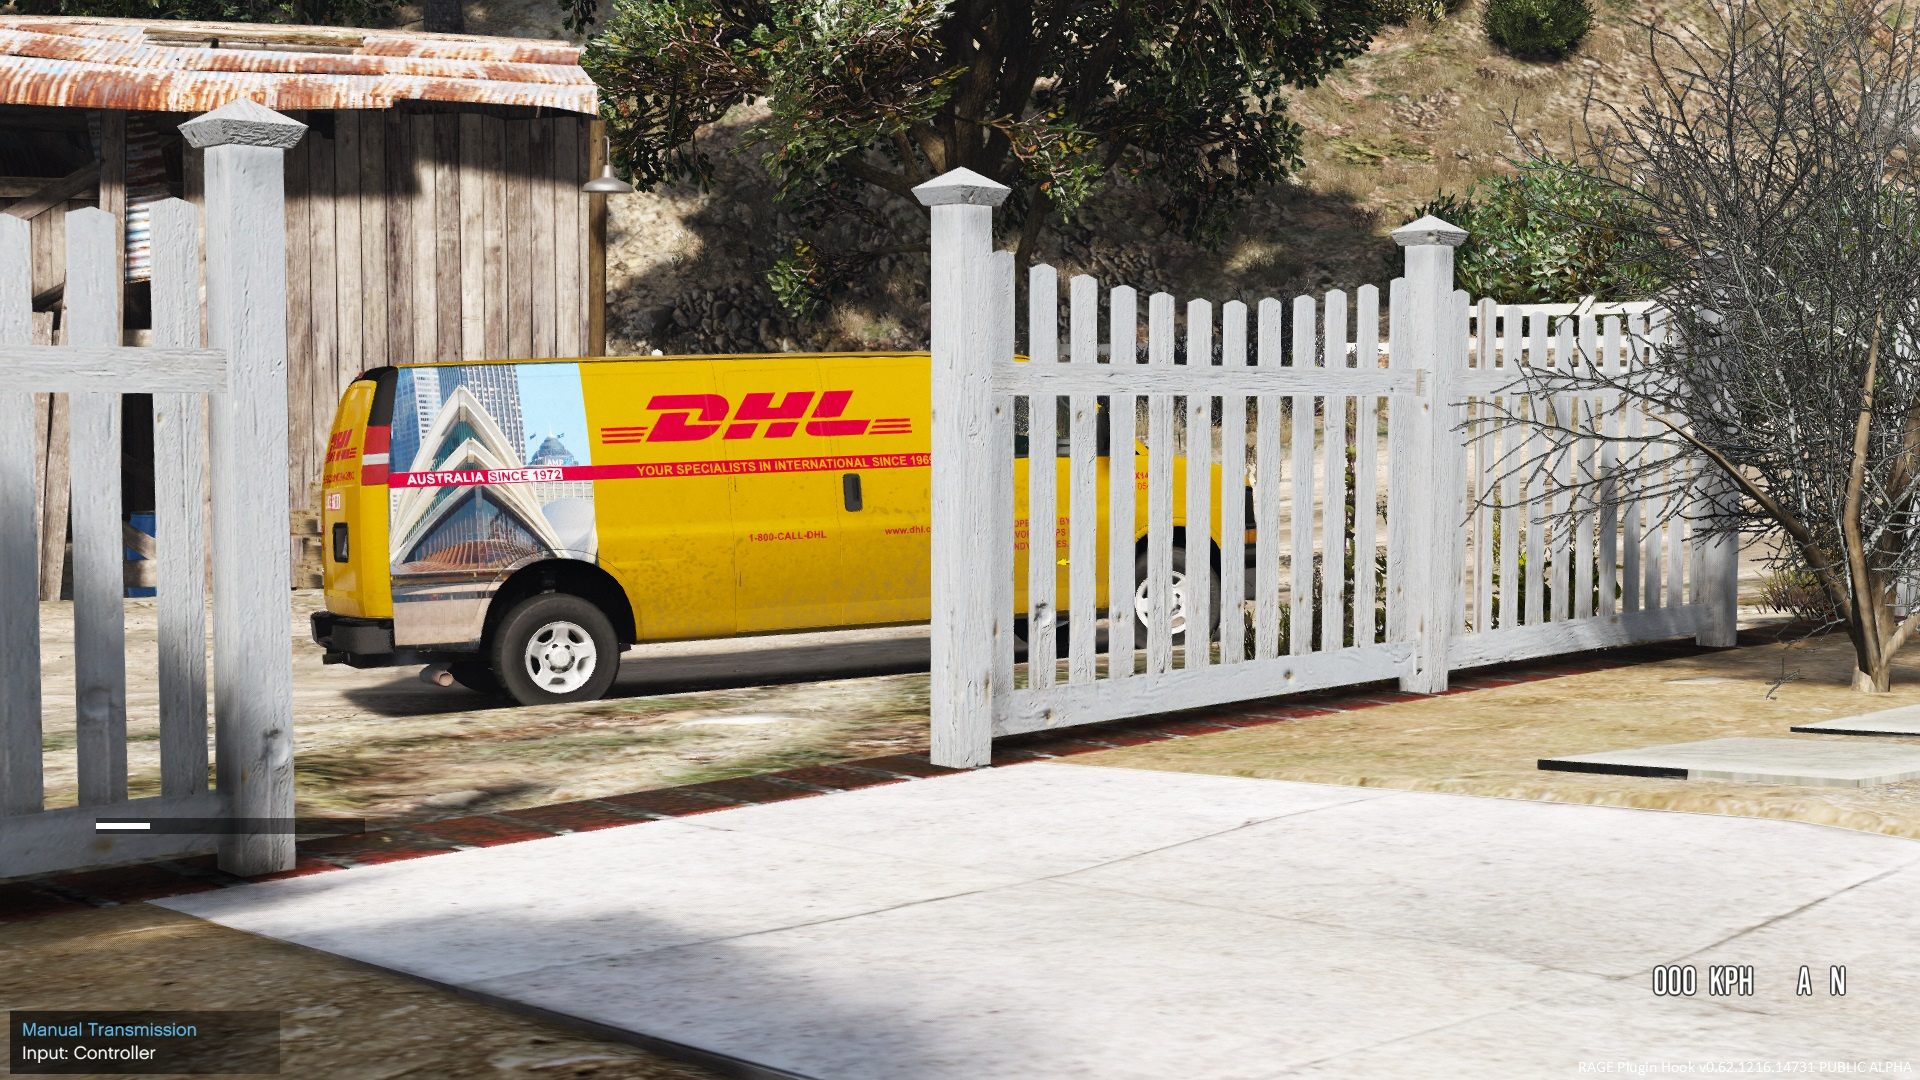 2016 Chevy Express 3500 DHL